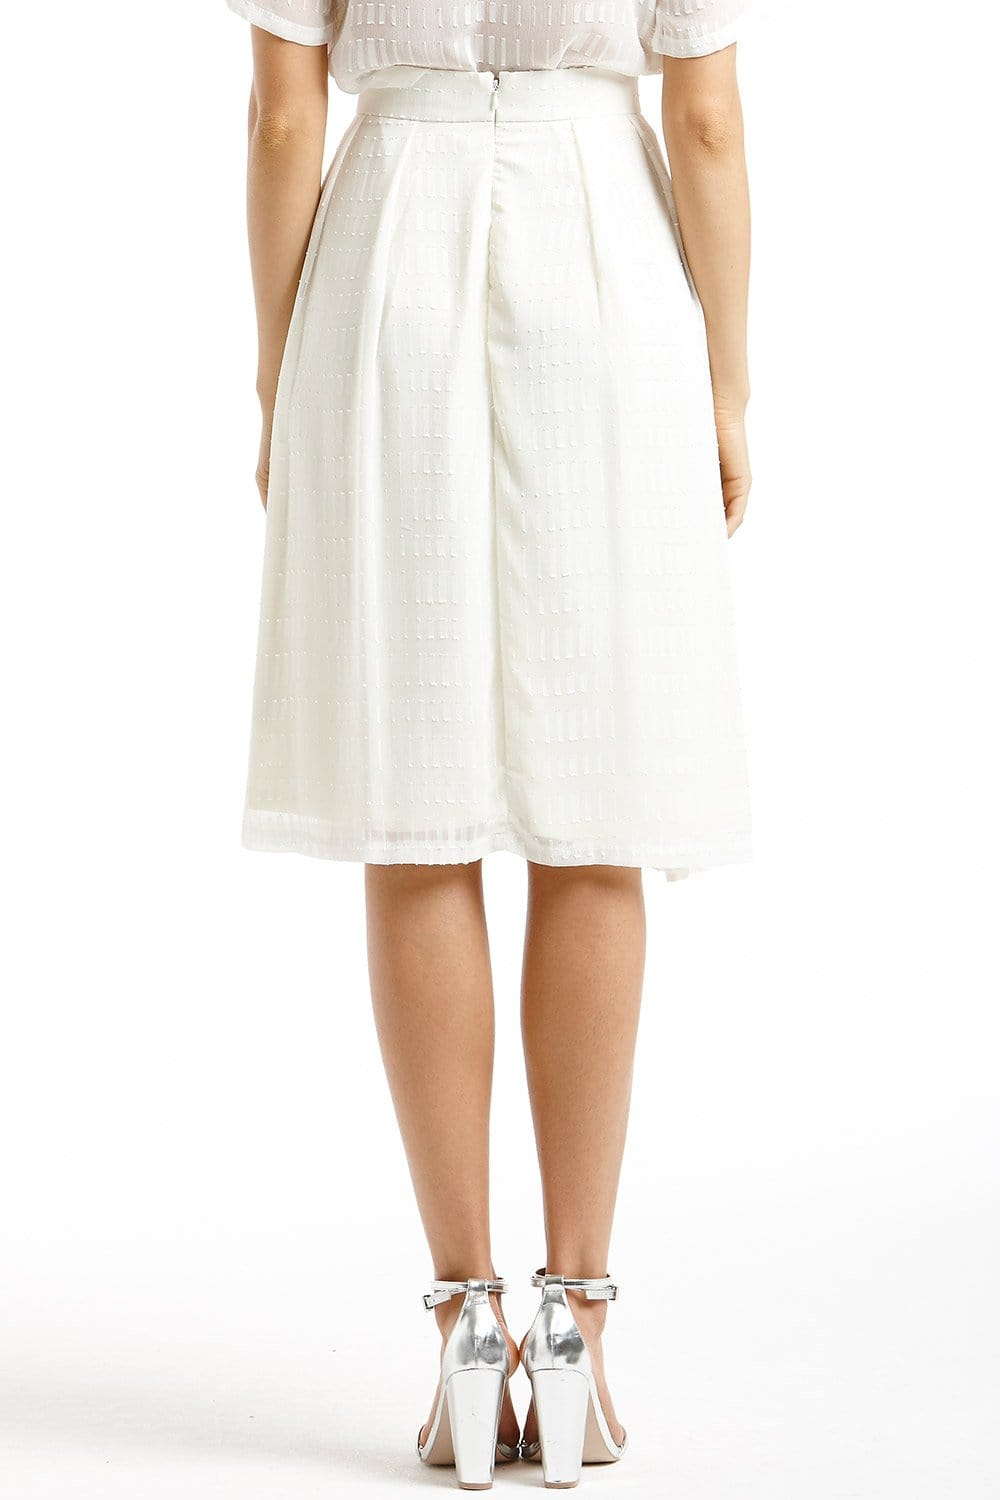 white sheer layered a line skirt from uk